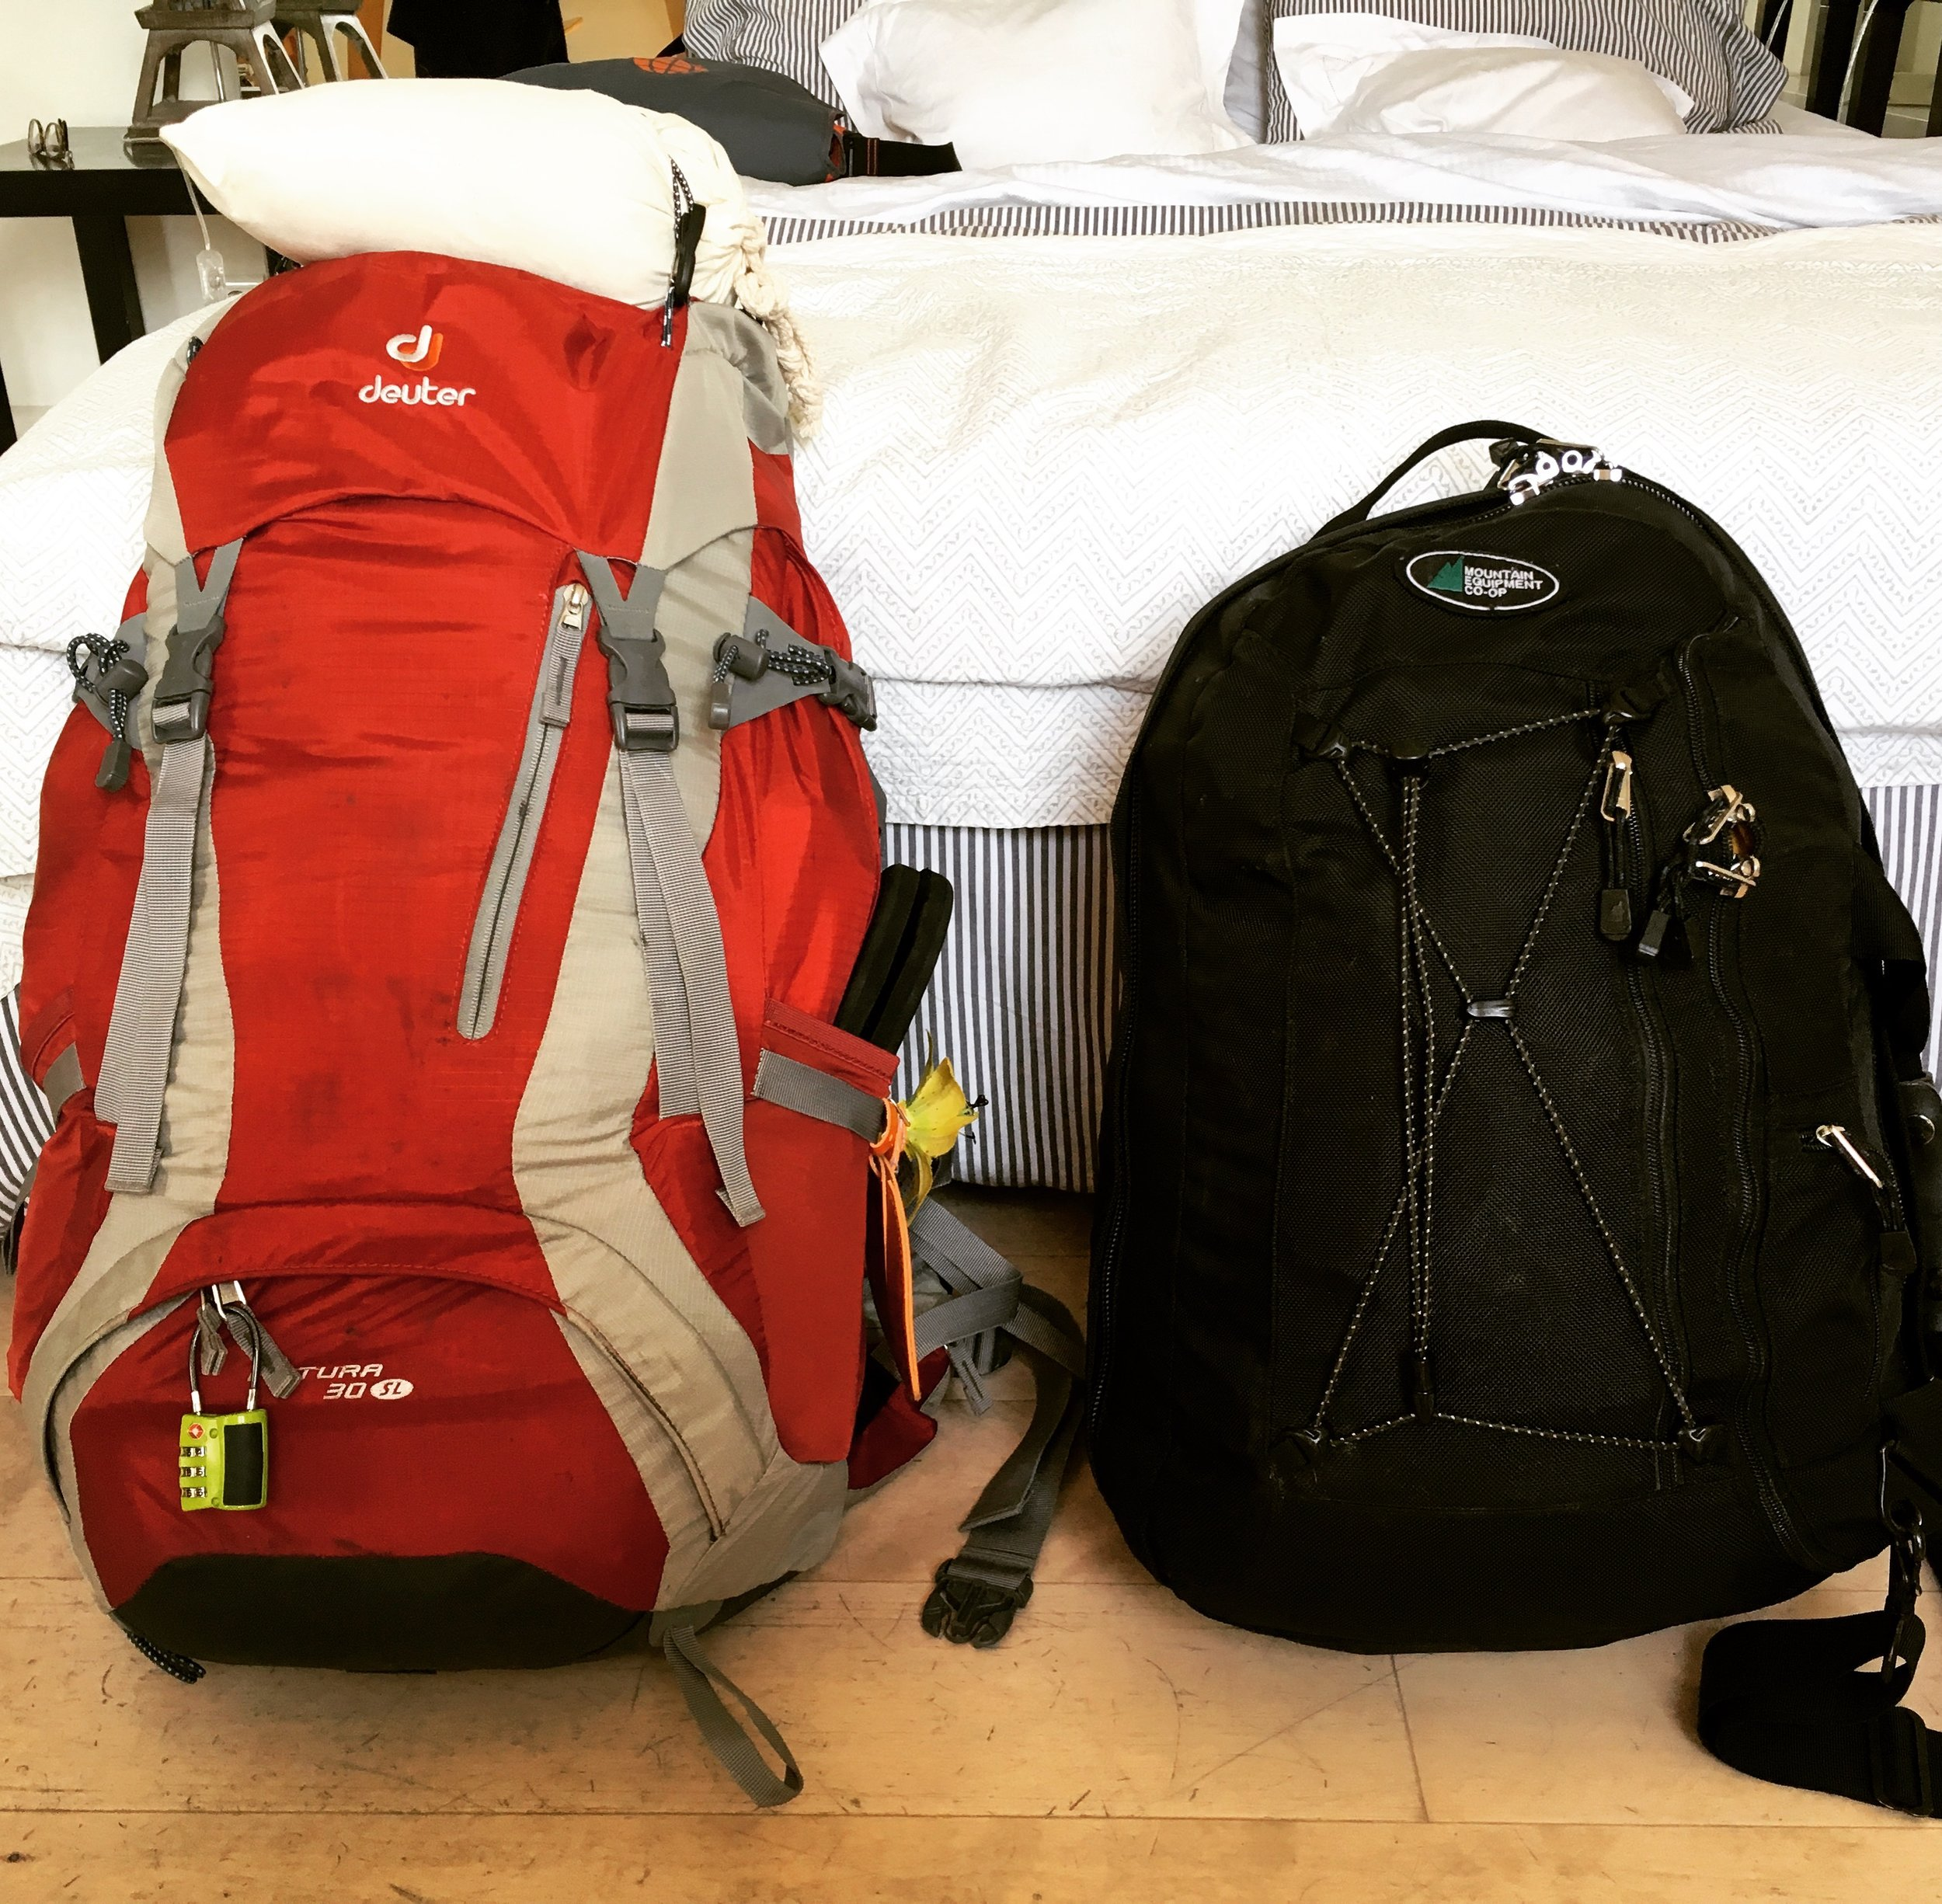 our packs, including clothes, shoes, and overnight kits, but not laptops, e-readers, and notebooks, in our St. Germain, Paris apartment.